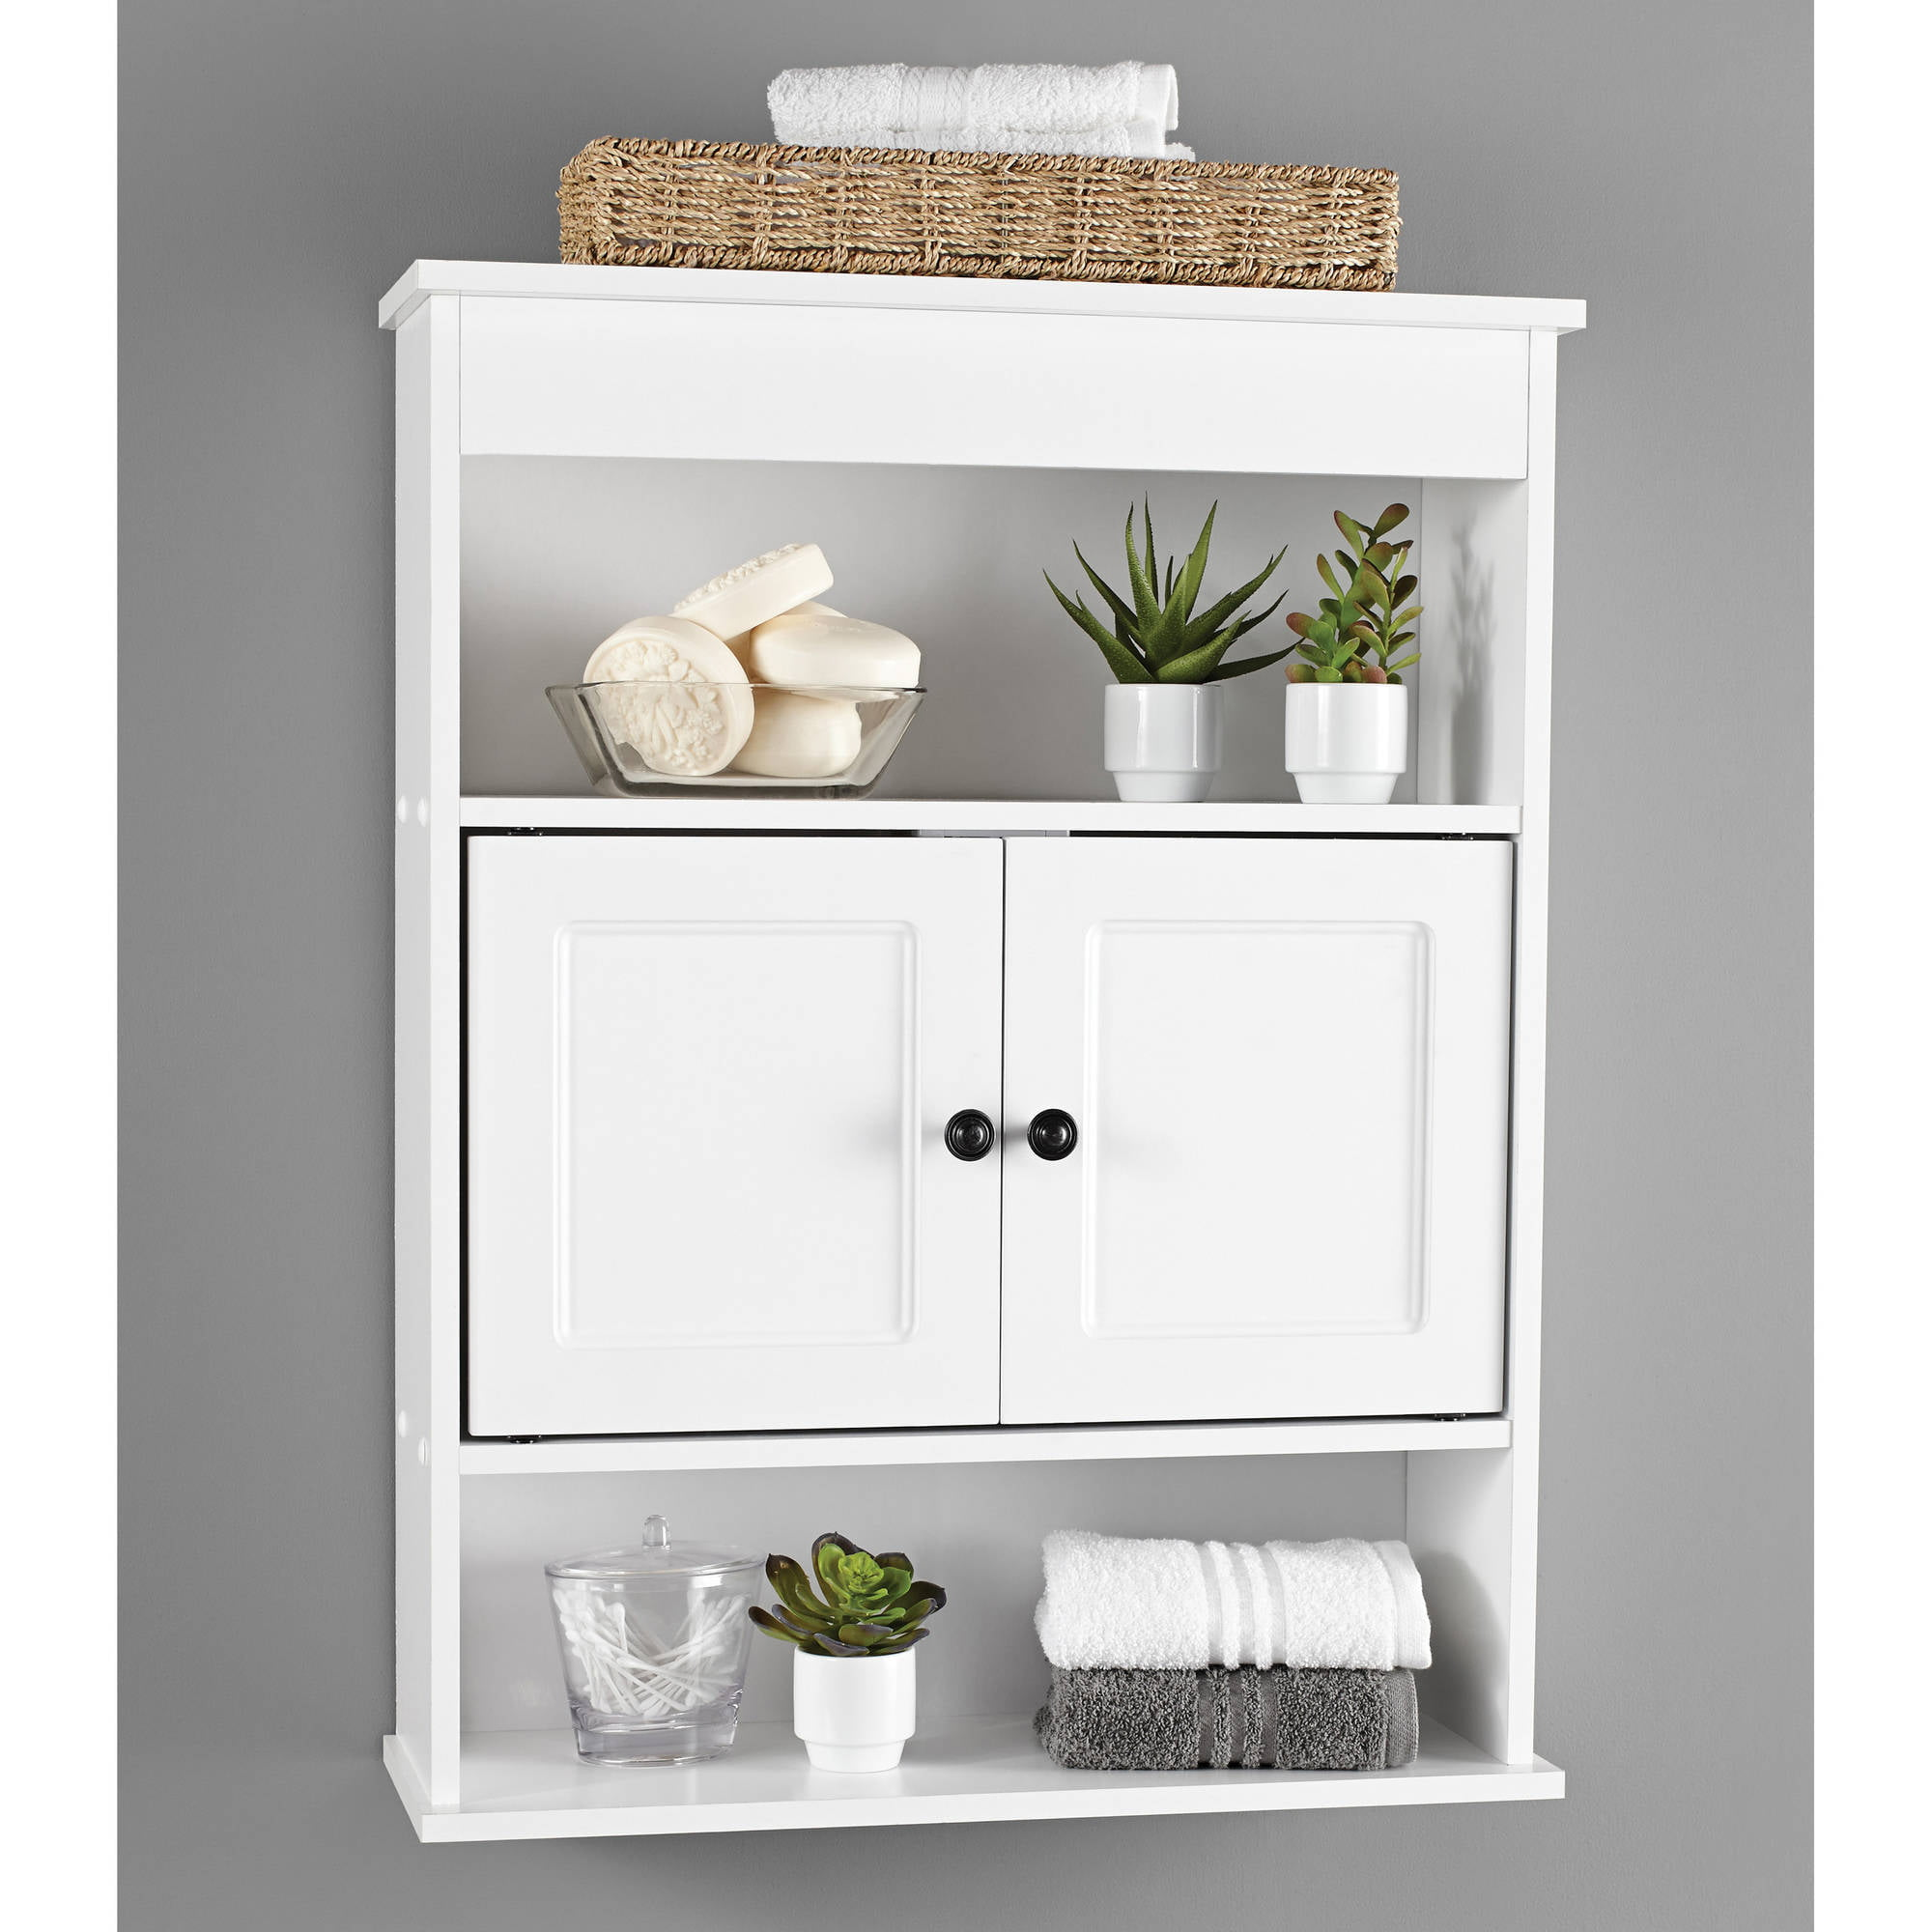 Cabinet wall bathroom storage white shelf organizer over - Wall mounted bathroom storage units ...